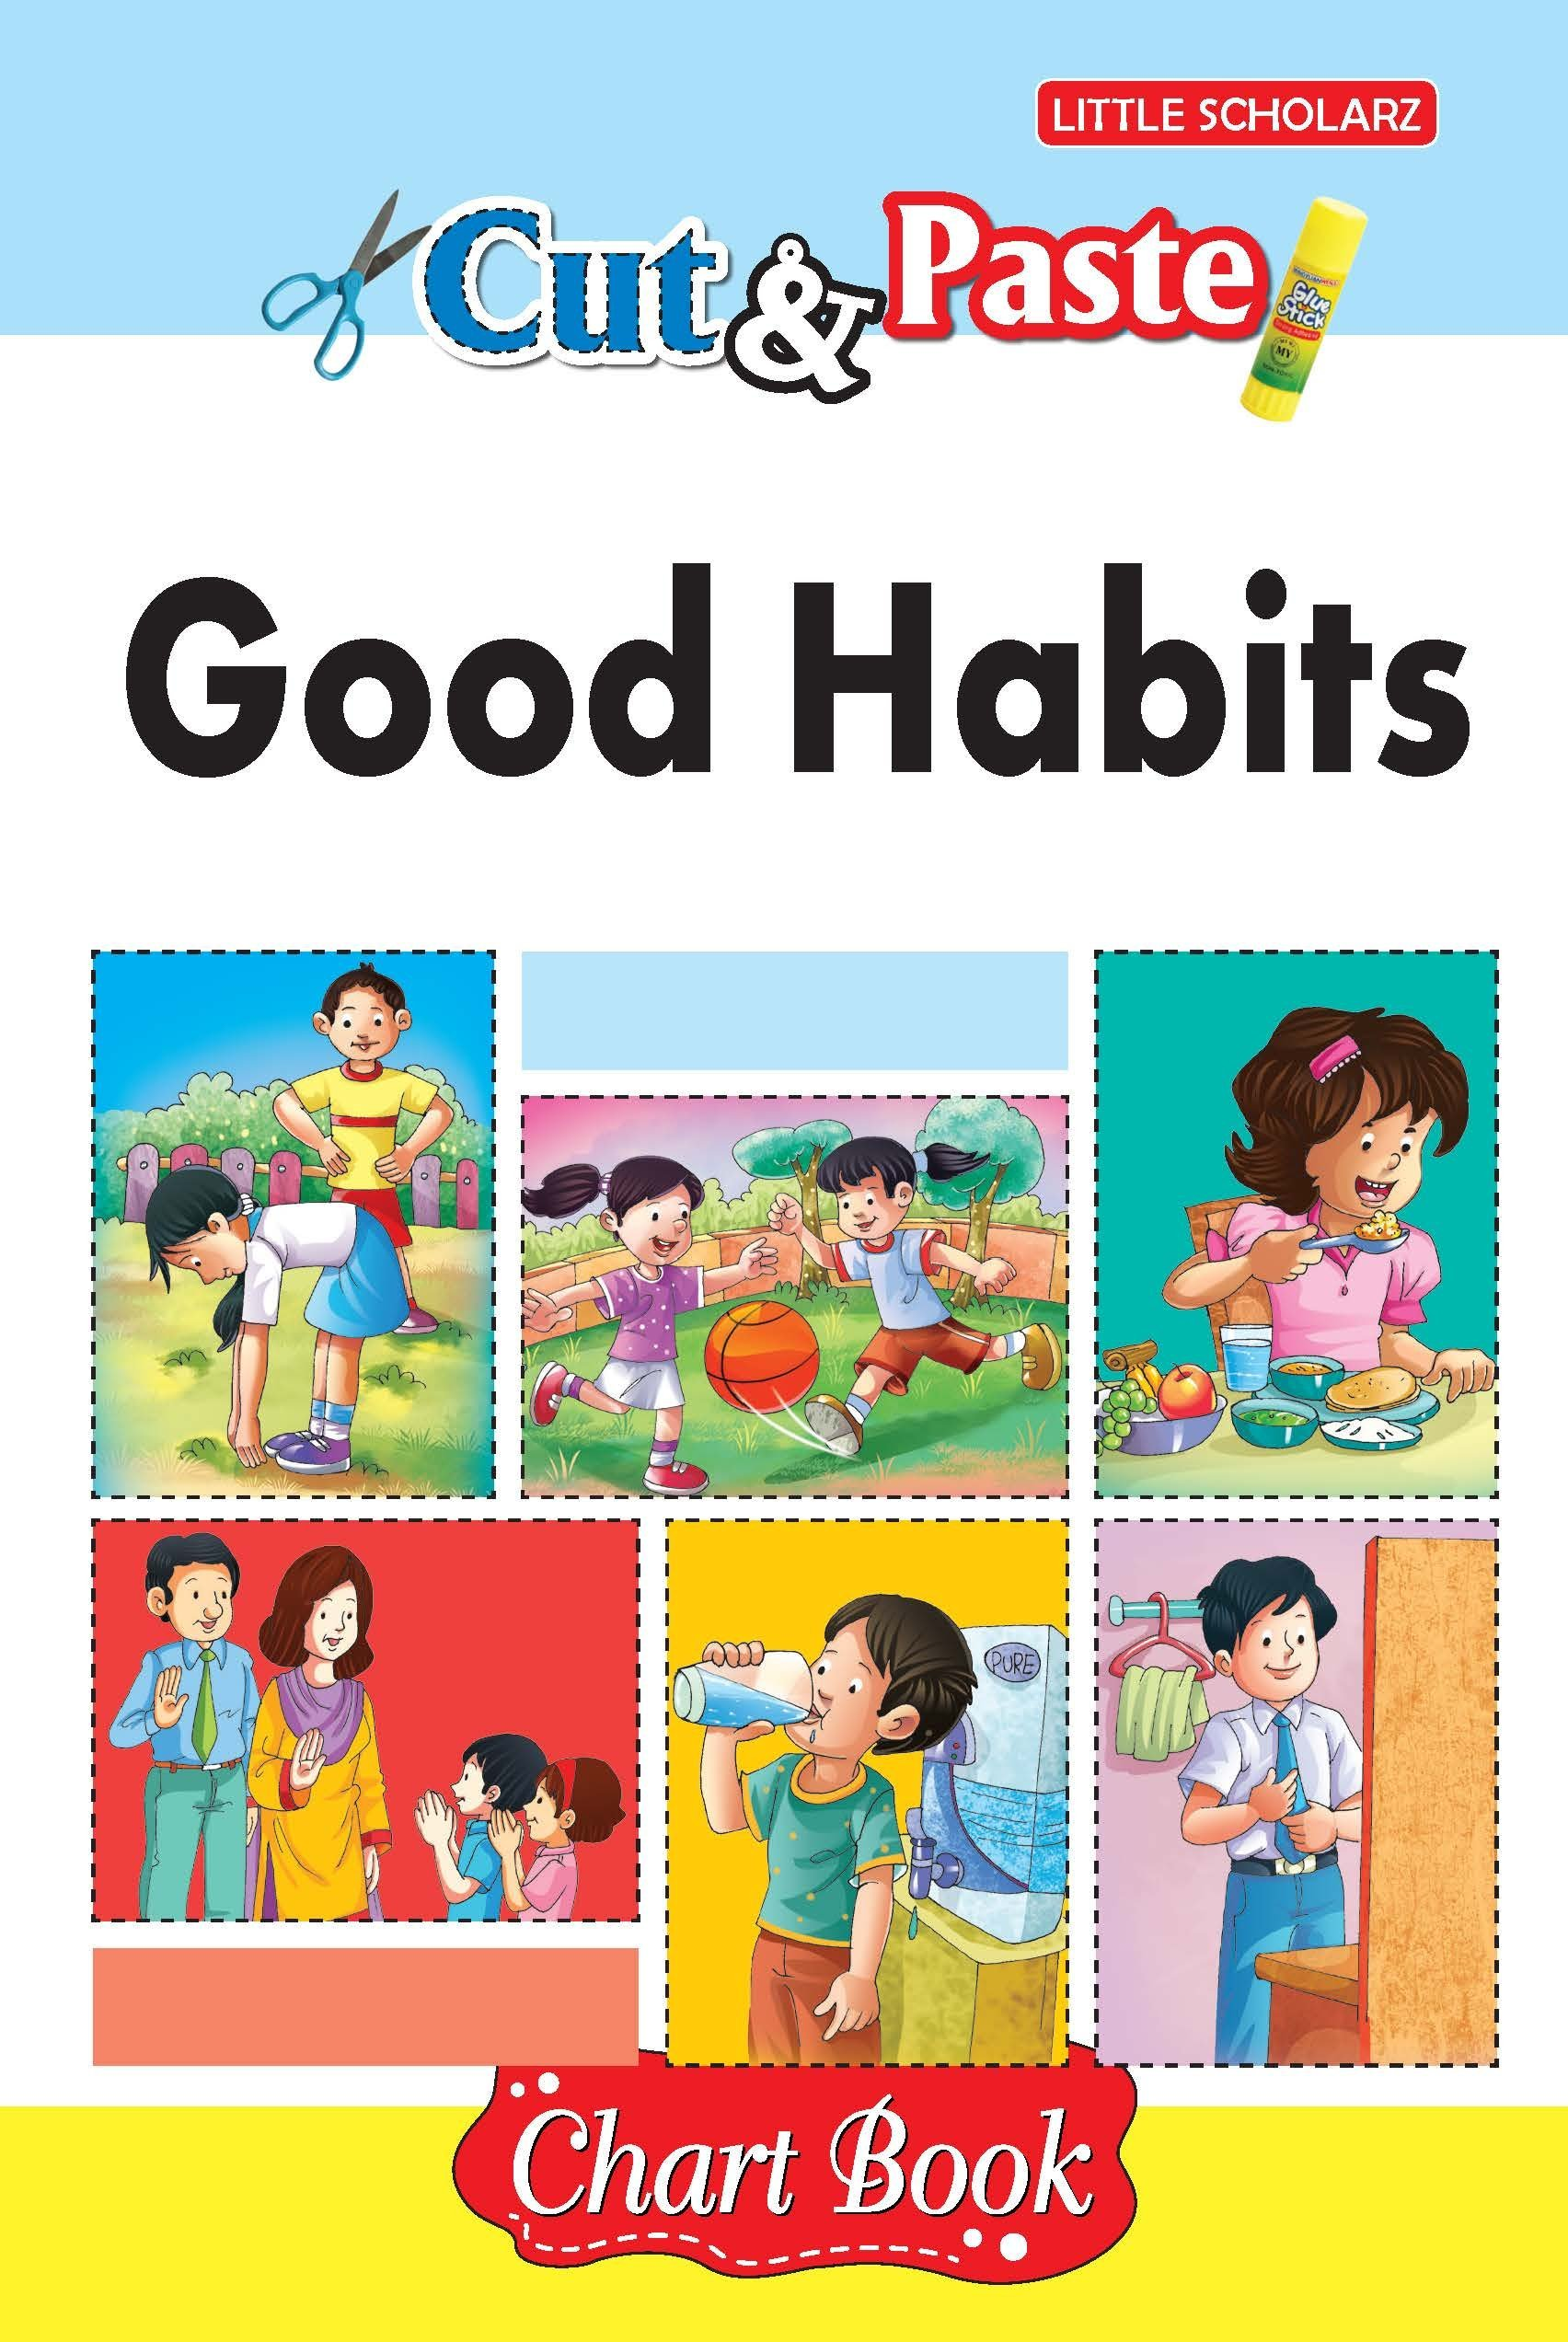 Amazon In Buy Cut Paste Good Habits Chart Book Book Online At Low Prices In India Cut Paste Good Habits Chart Book Reviews Ratings